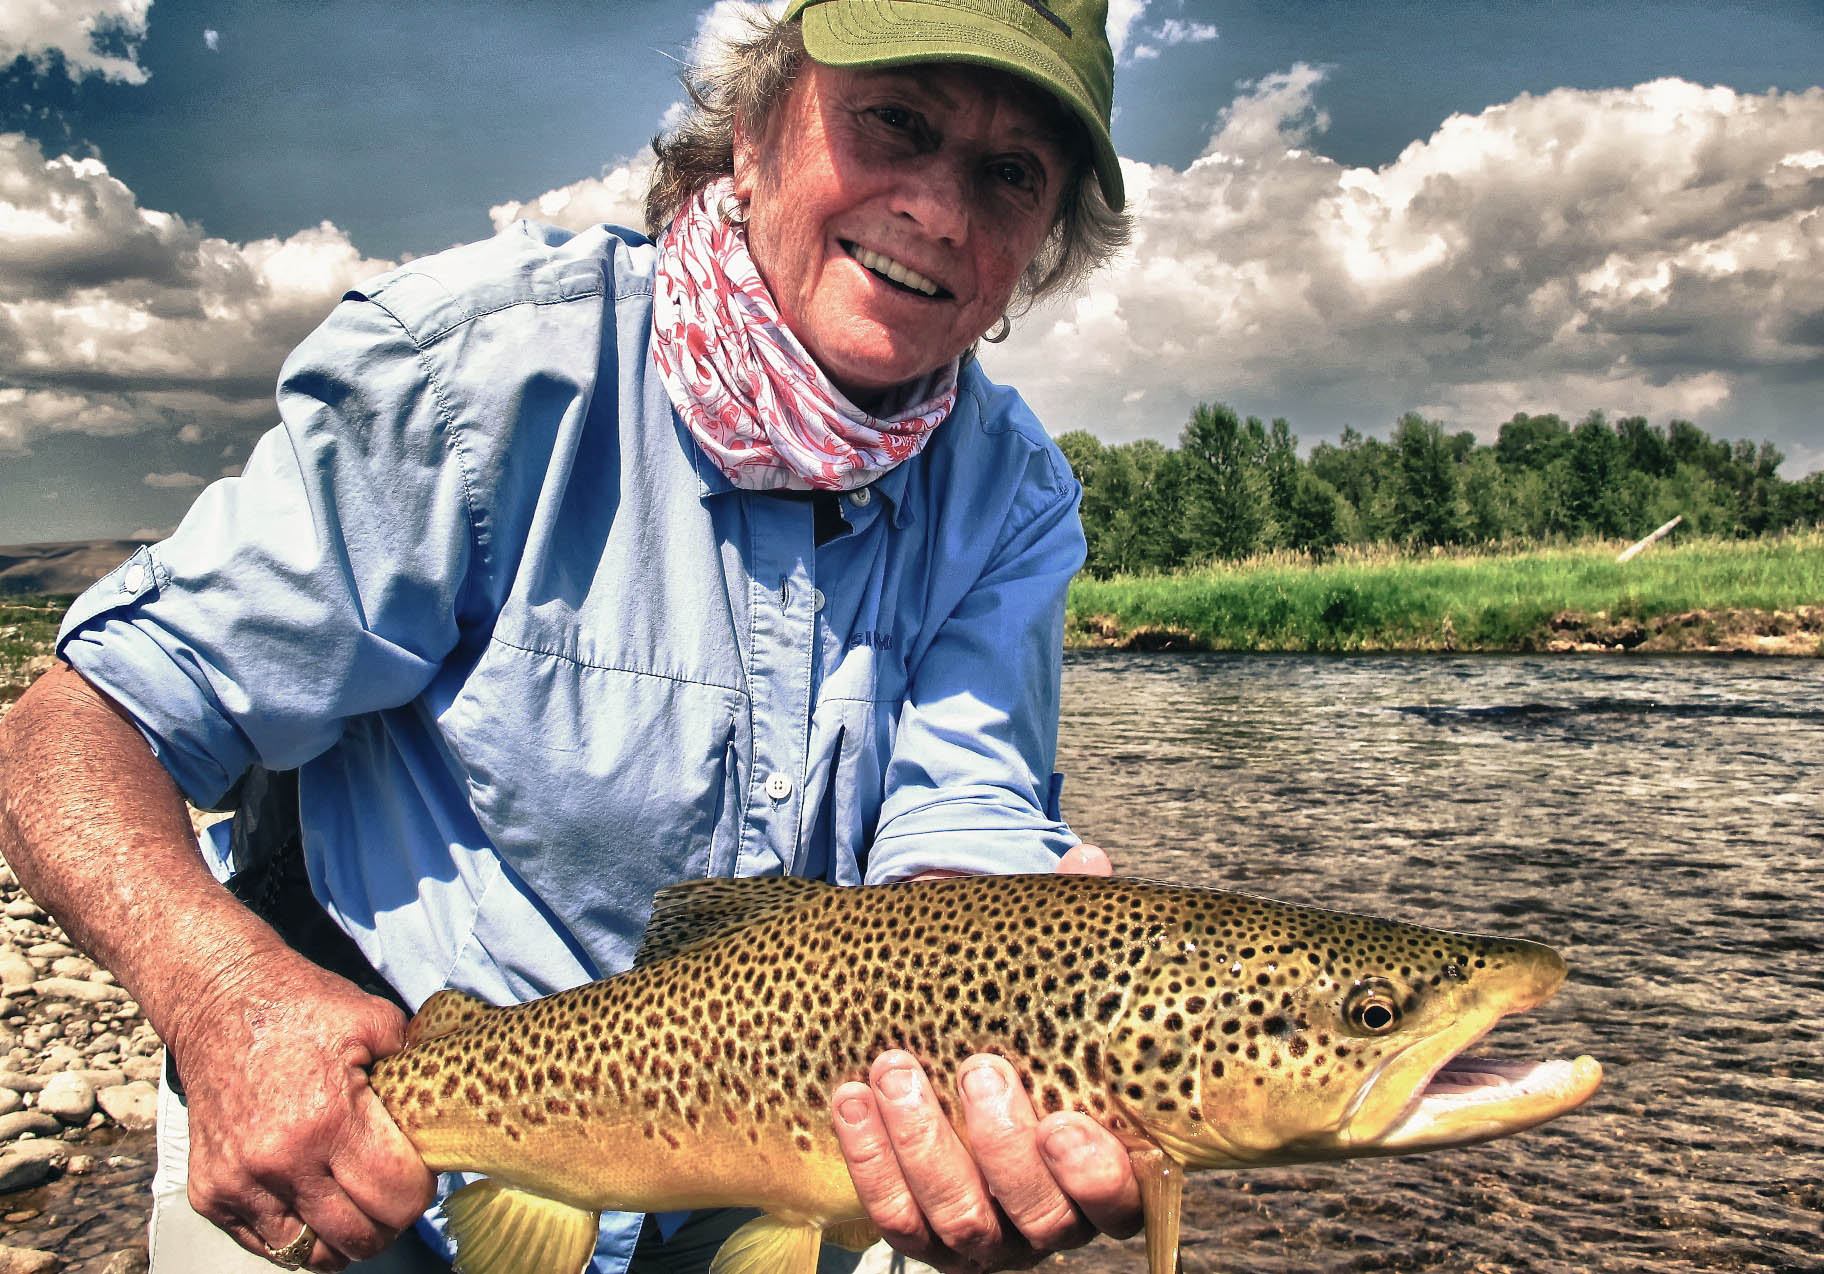 Wild Brown Trout Private Water Fly Fishing Wade Fishing